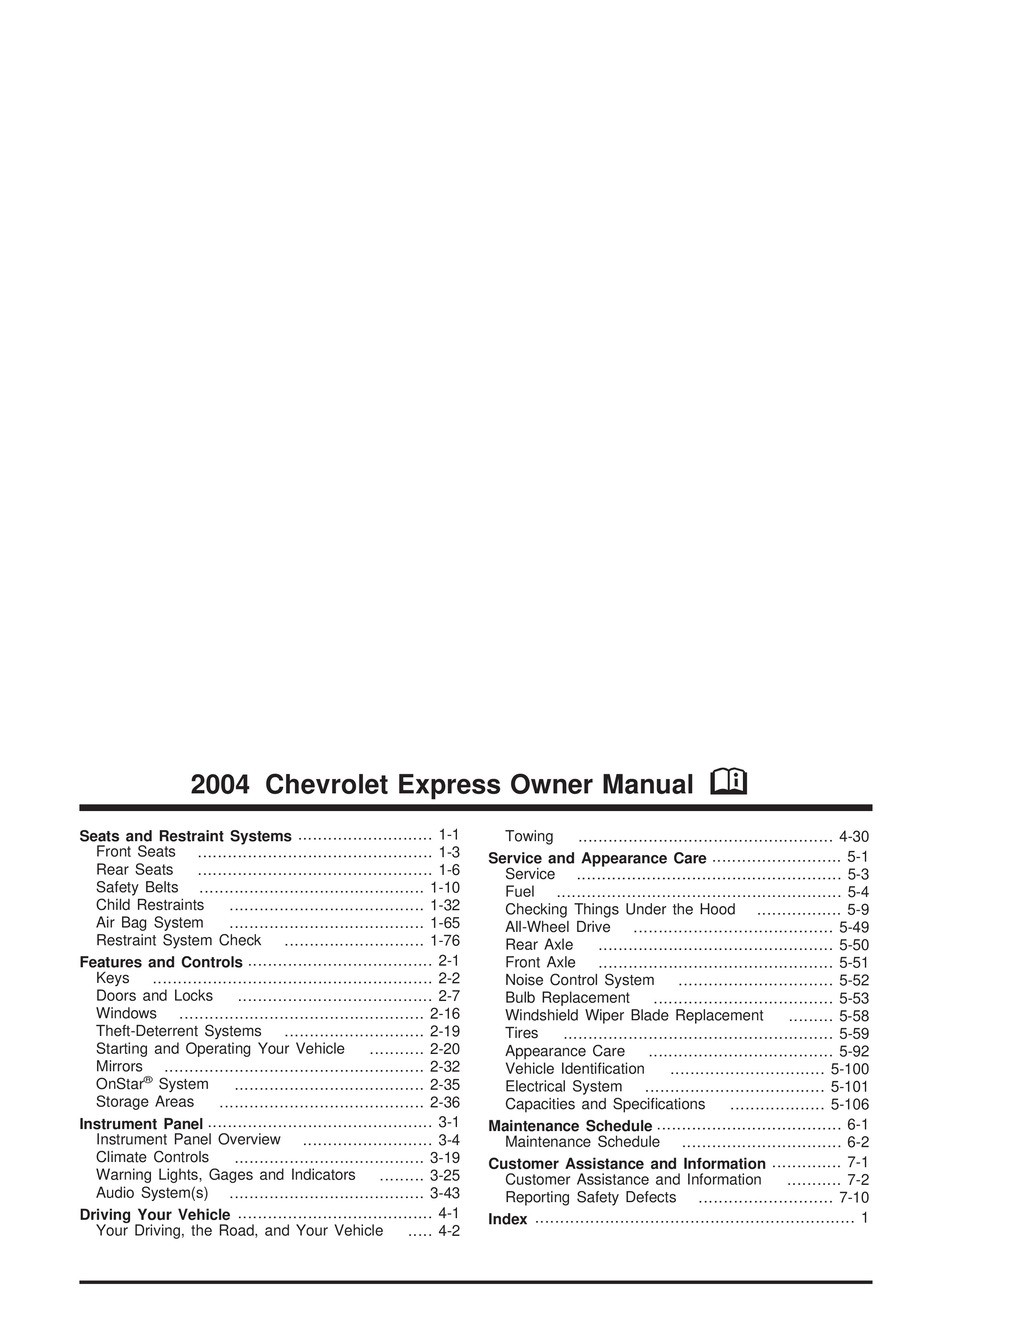 2004 Chevrolet Express owners manual